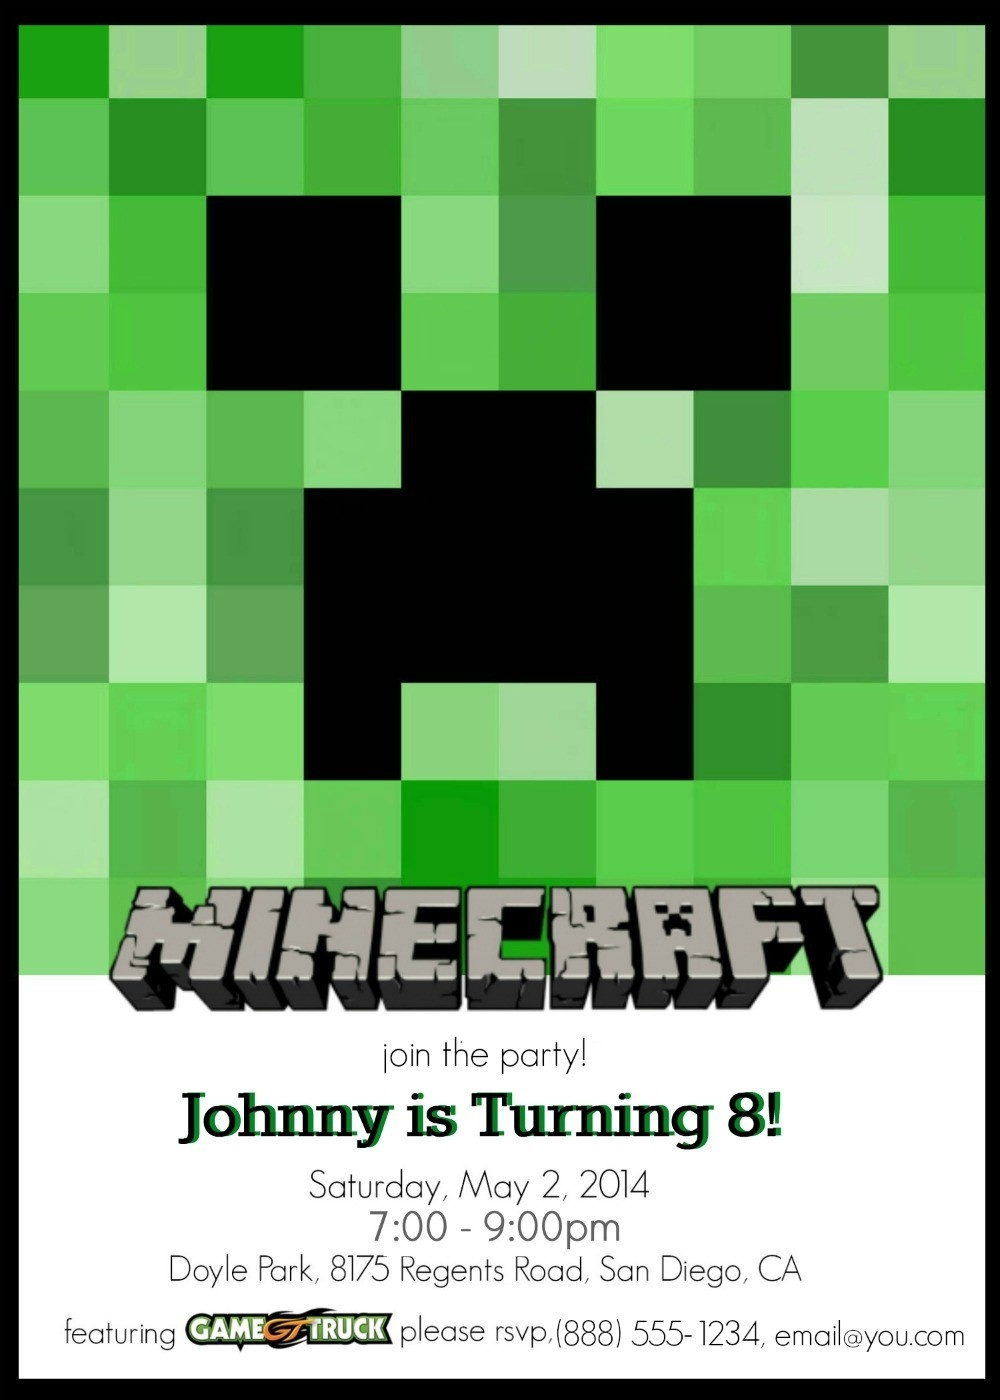 Make Your Own Custom Printable Minecraft Party Invitations - Printable Invitations Free No Download